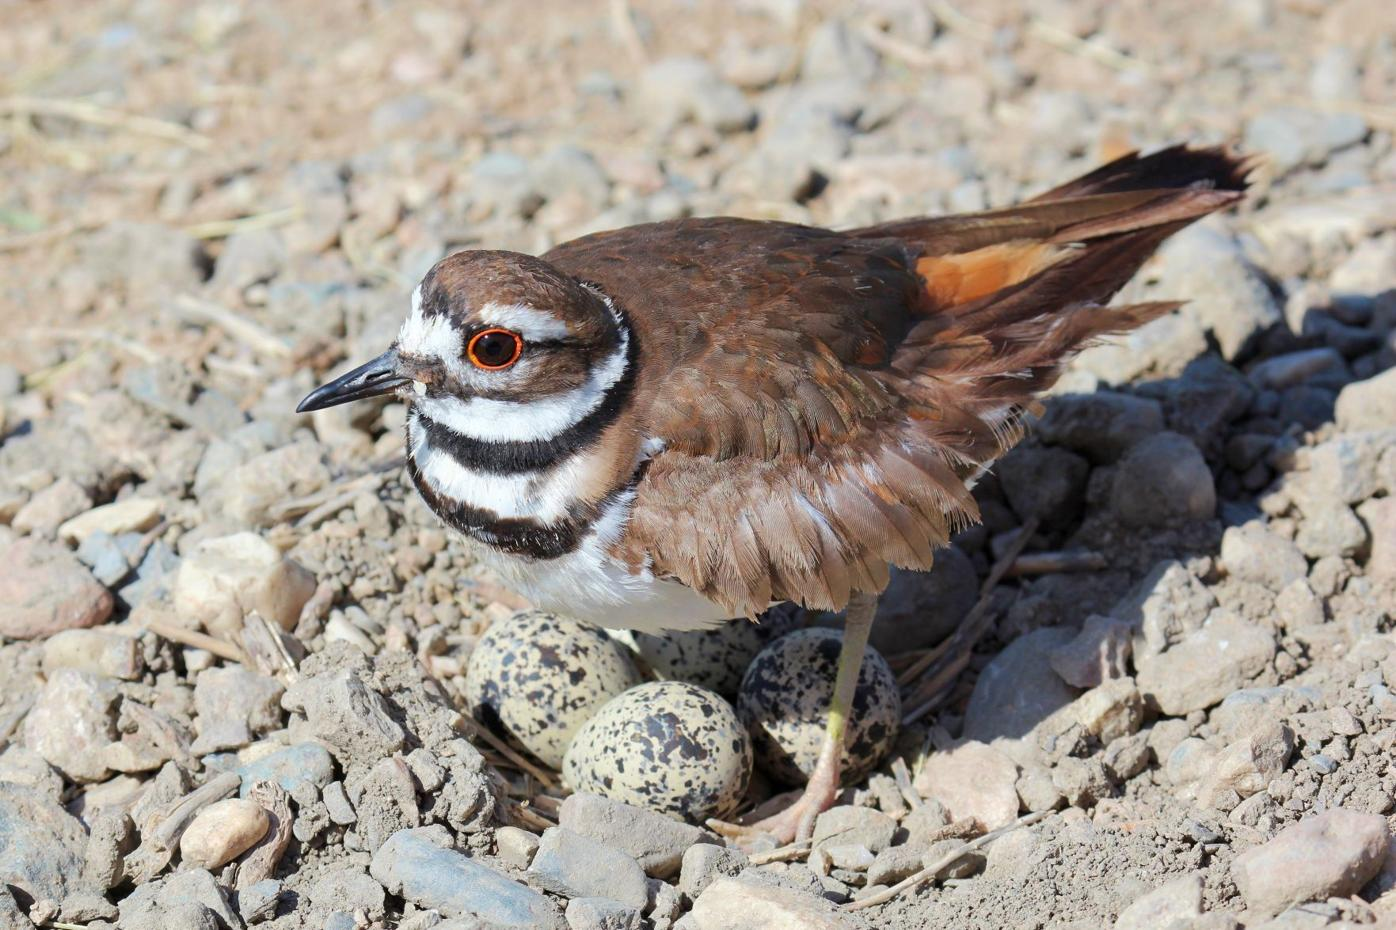 Bird's nest protected as work continues around unhatched eggs